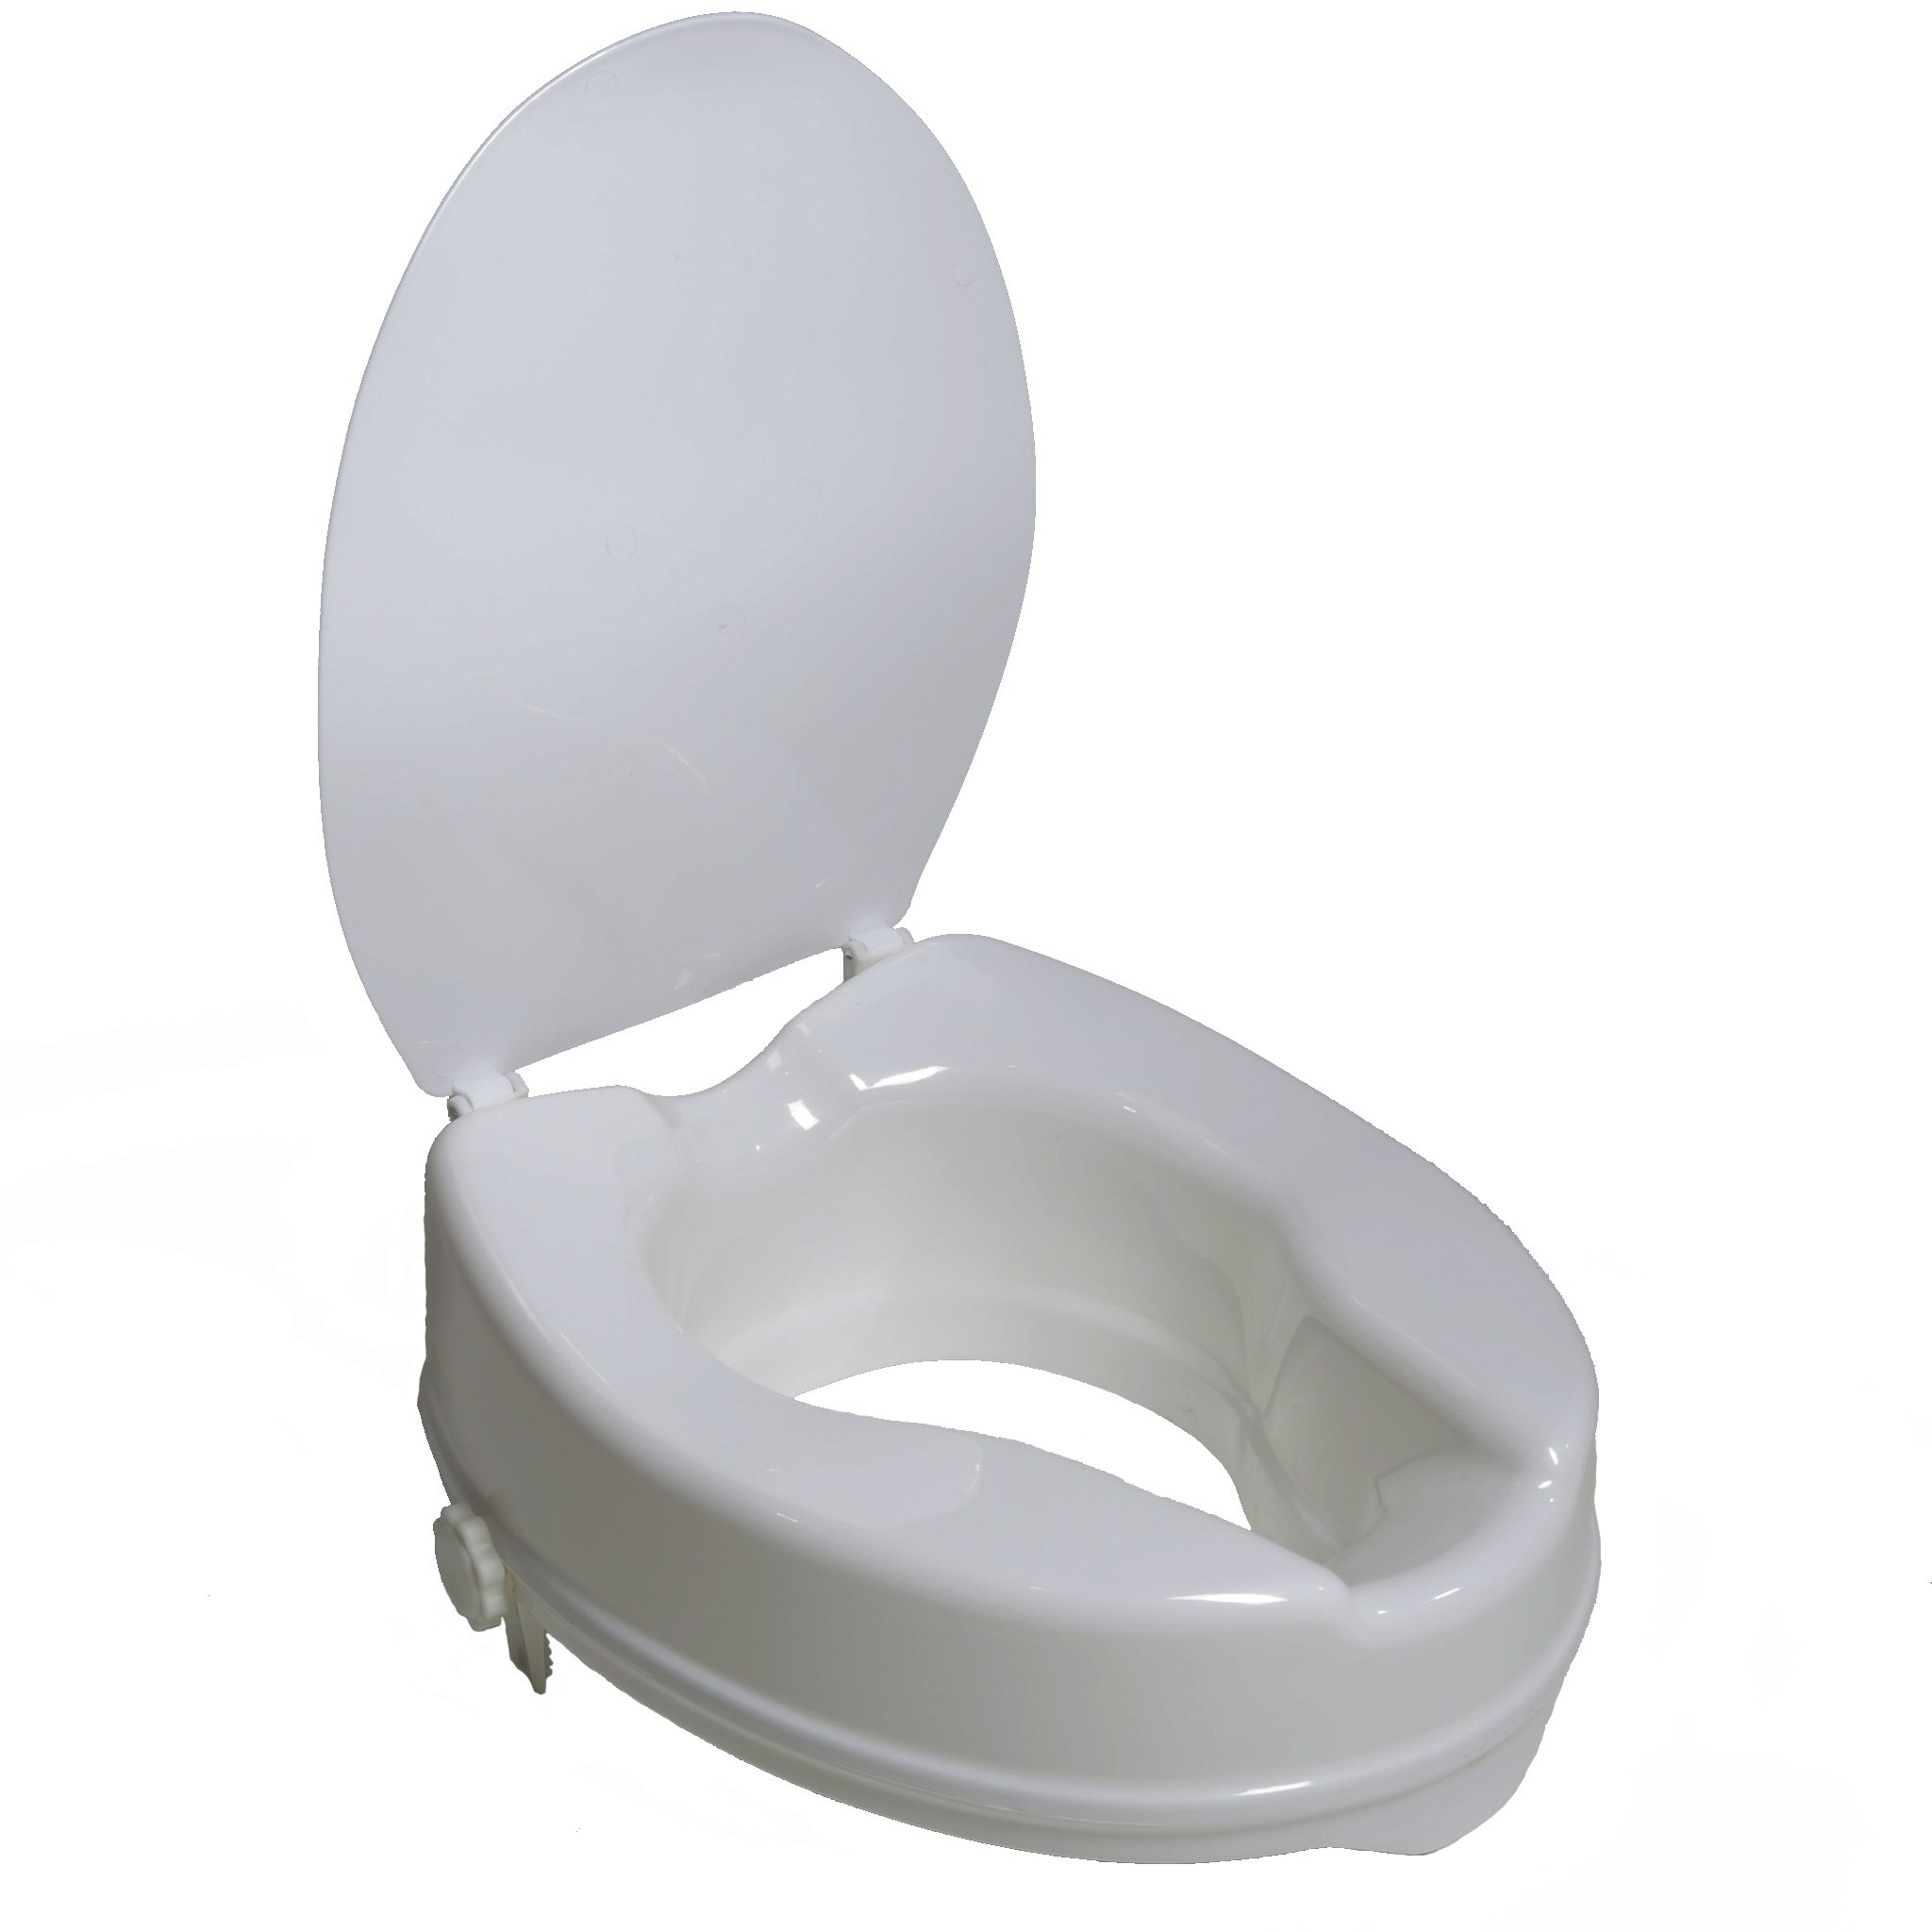 PCP 4'' Raised Standard Toilet Seat, Increase Height Over Commode, Includes Lid, Tightening Stability Safety Clamps